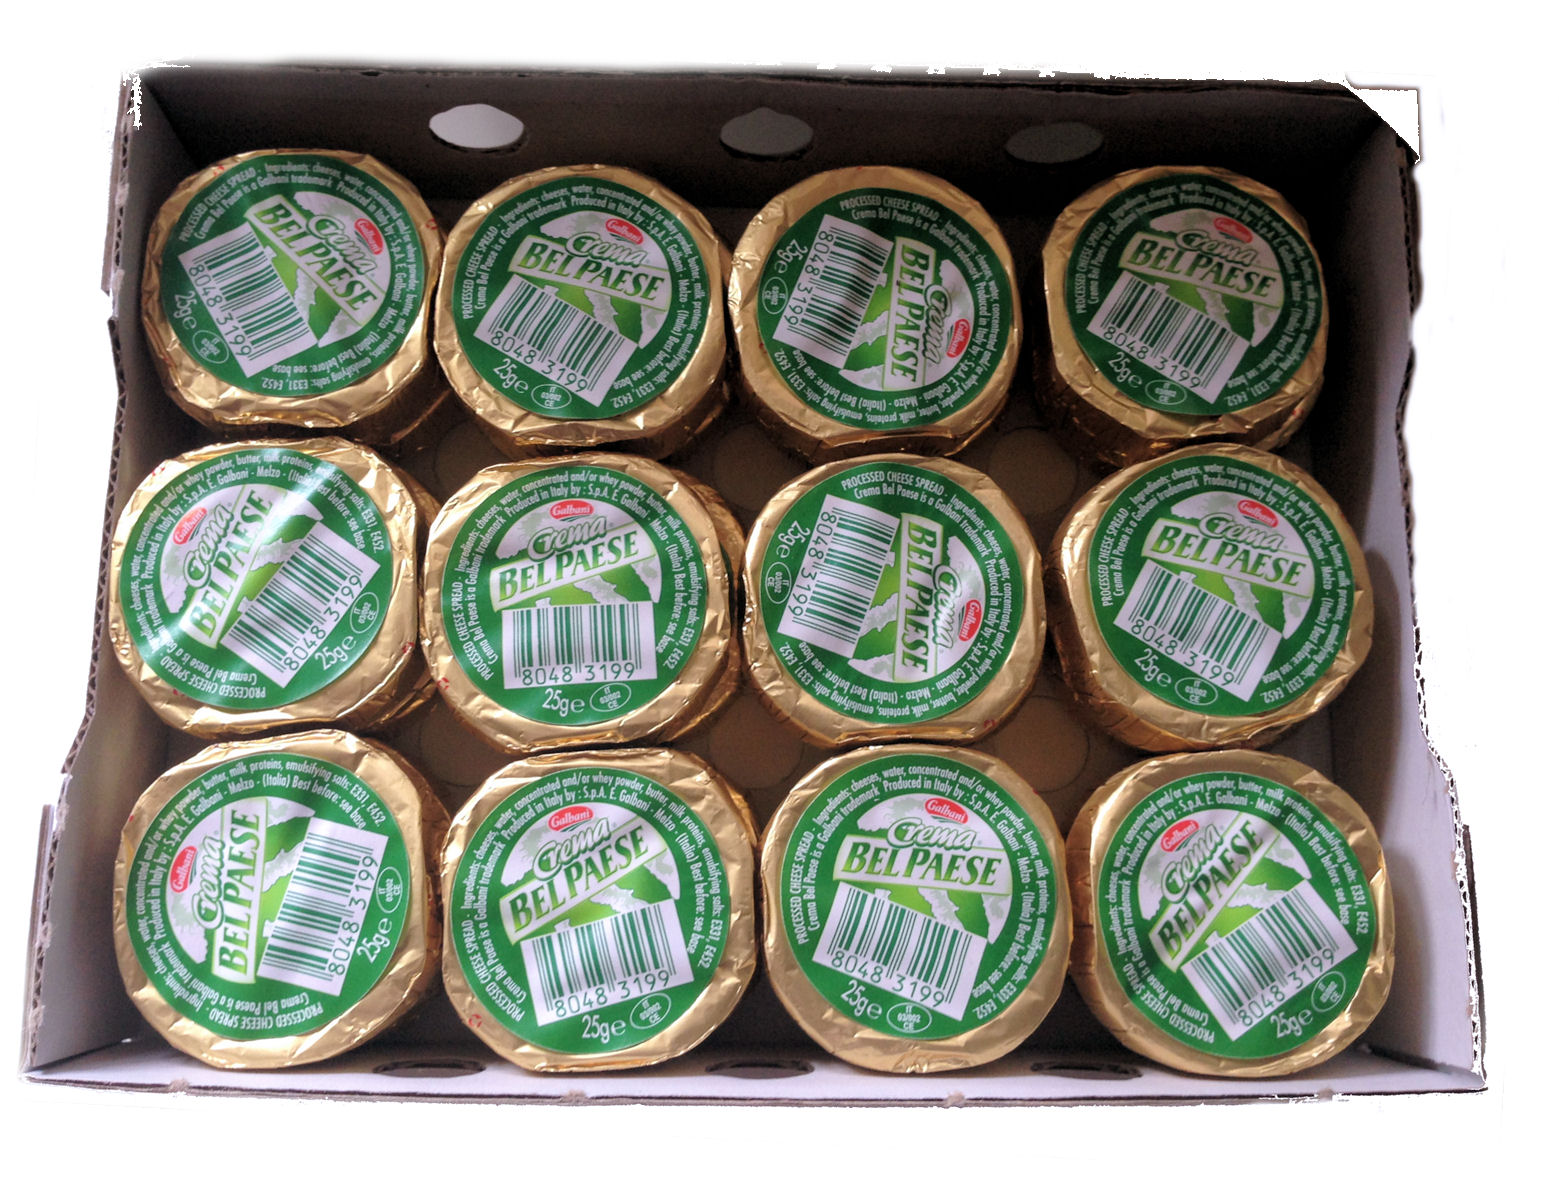 Galbani Bel Paese Cheese Buttons 25g 24 Button Box